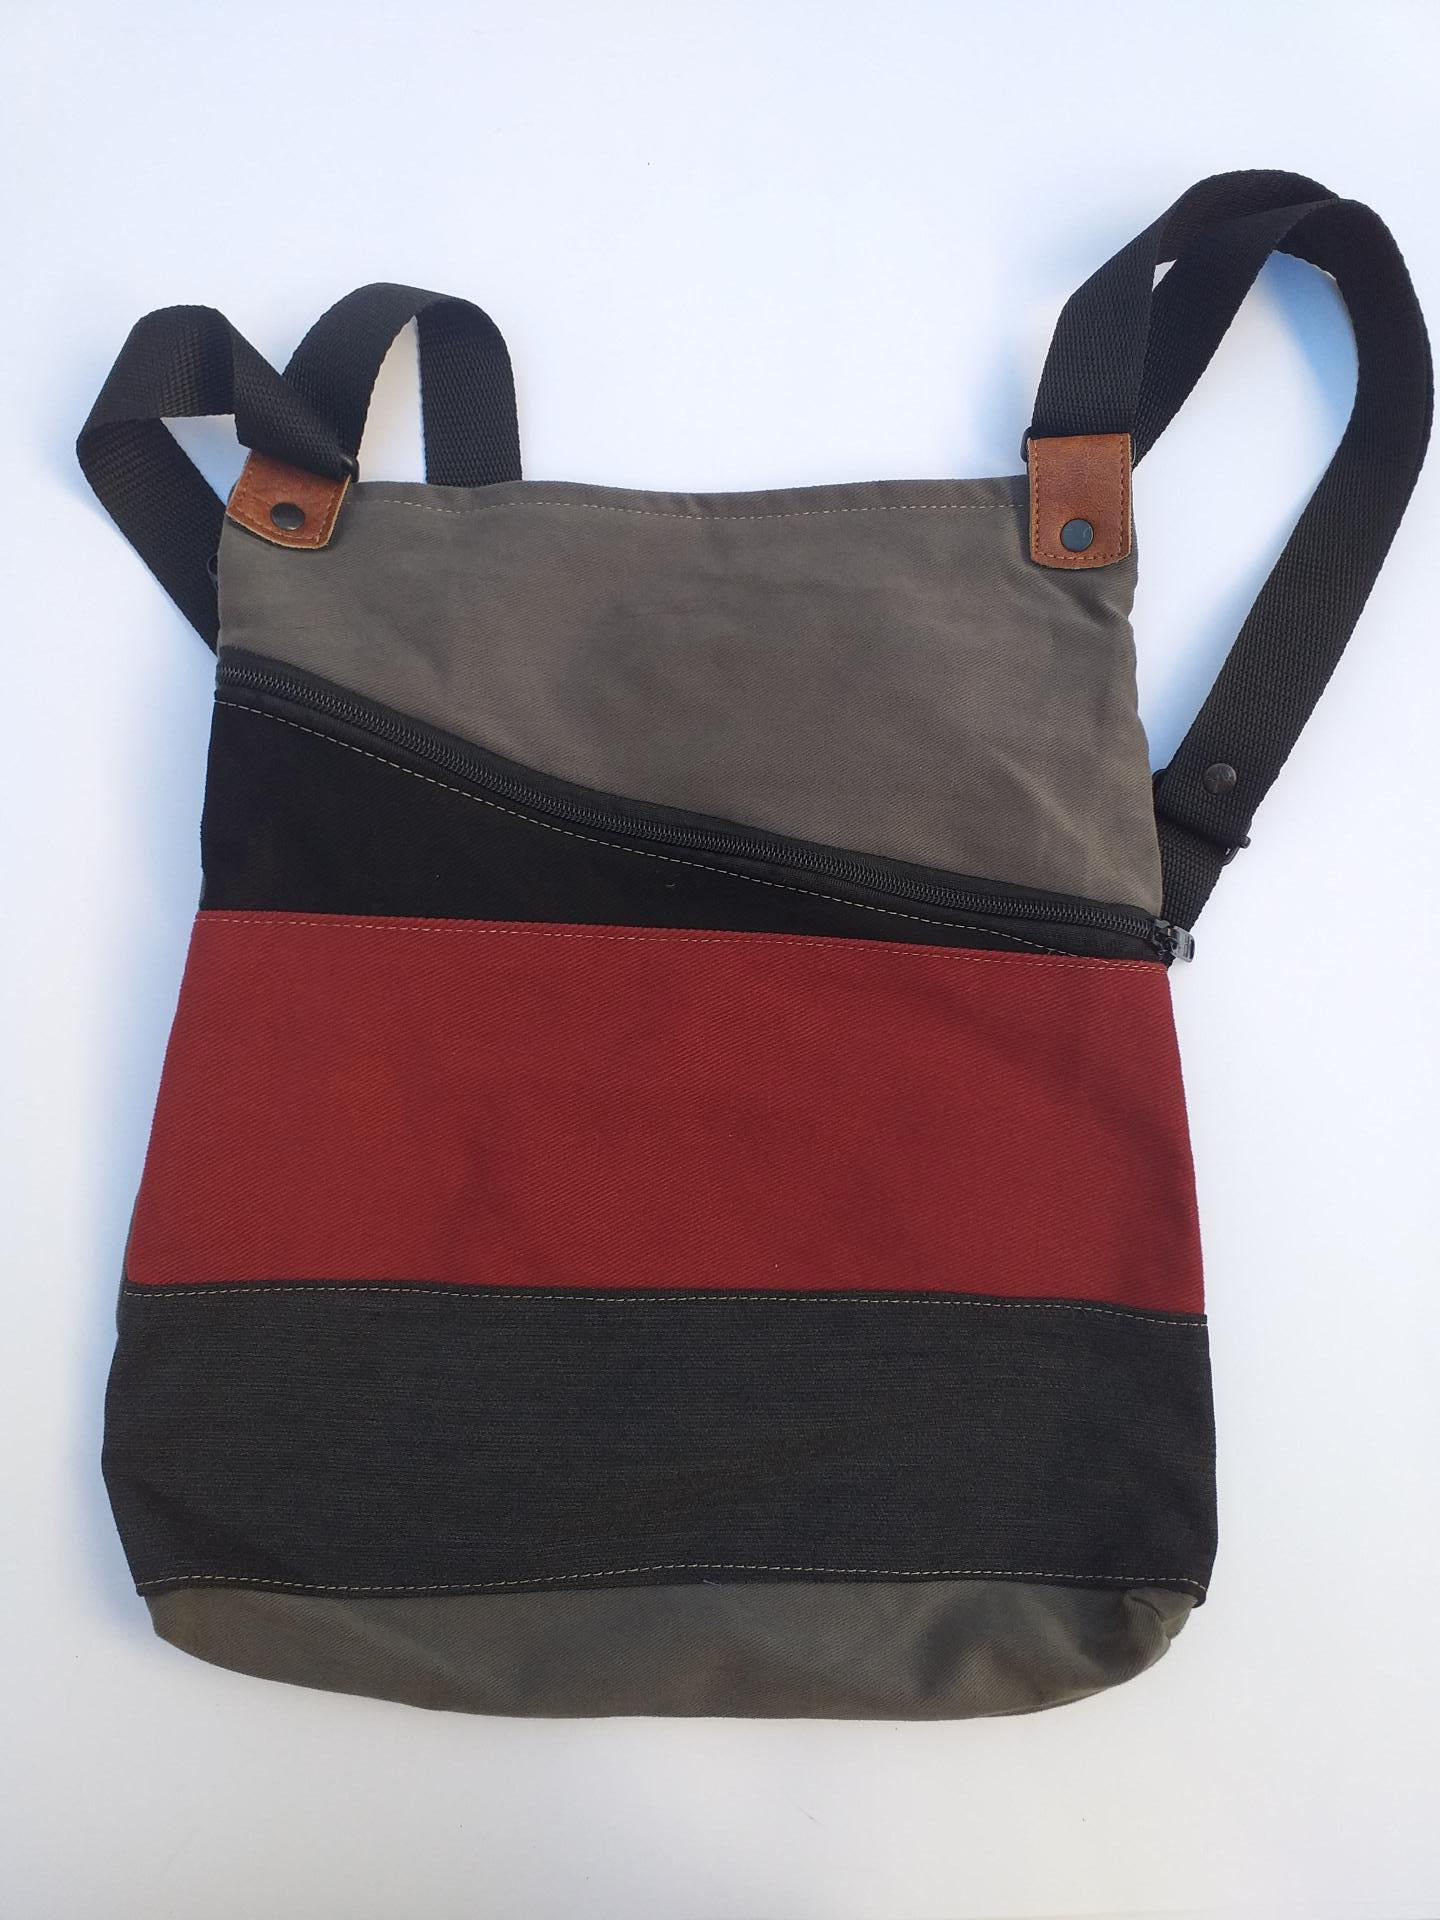 BACKPACK TRIANGULO RED AND BLACK